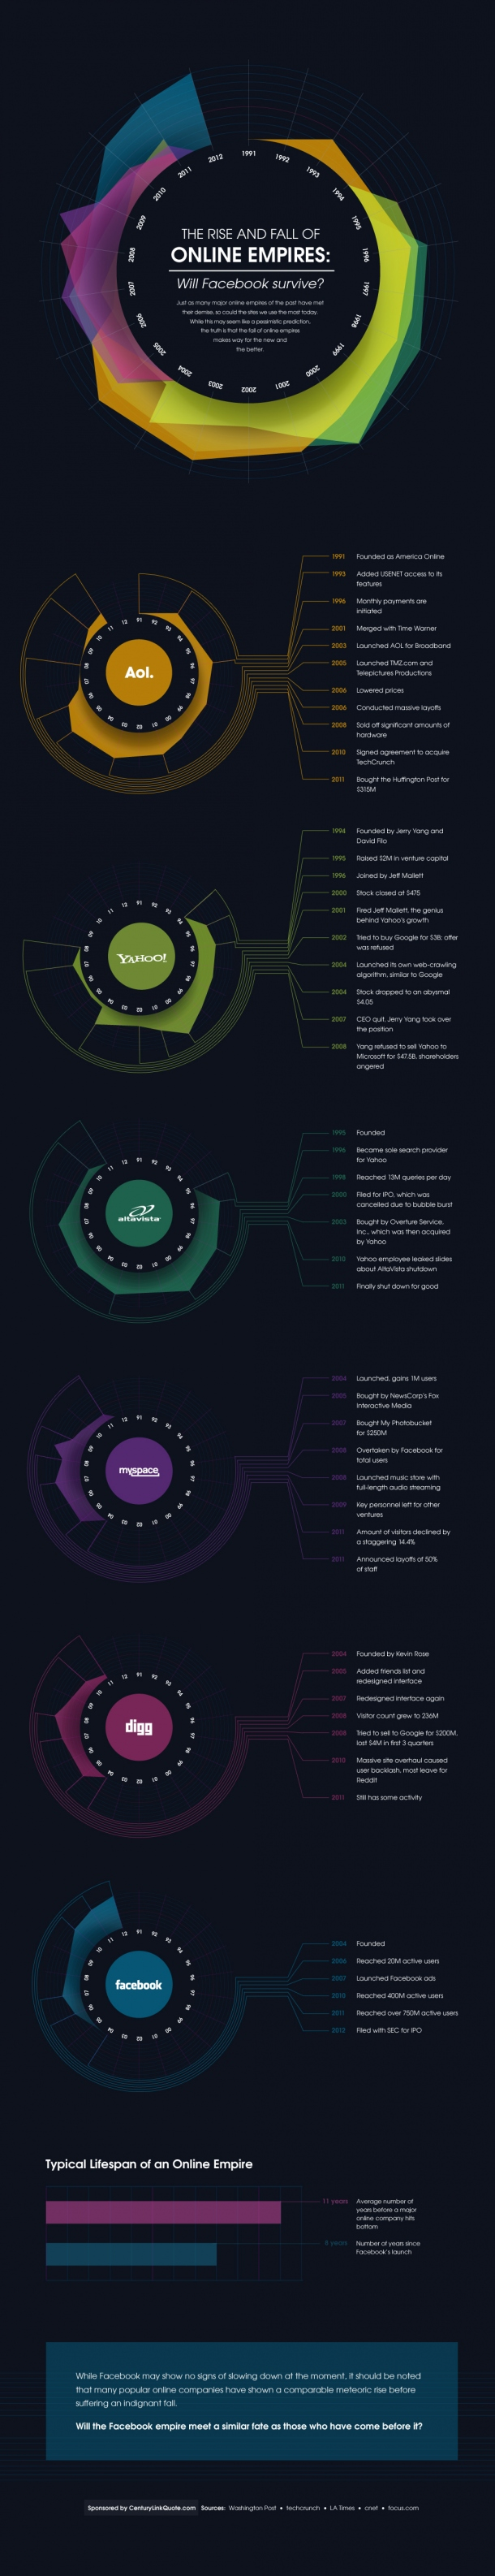 The Rise and Fall of Online Empires: Will Facebook Survive[INFOGRAPHIC]